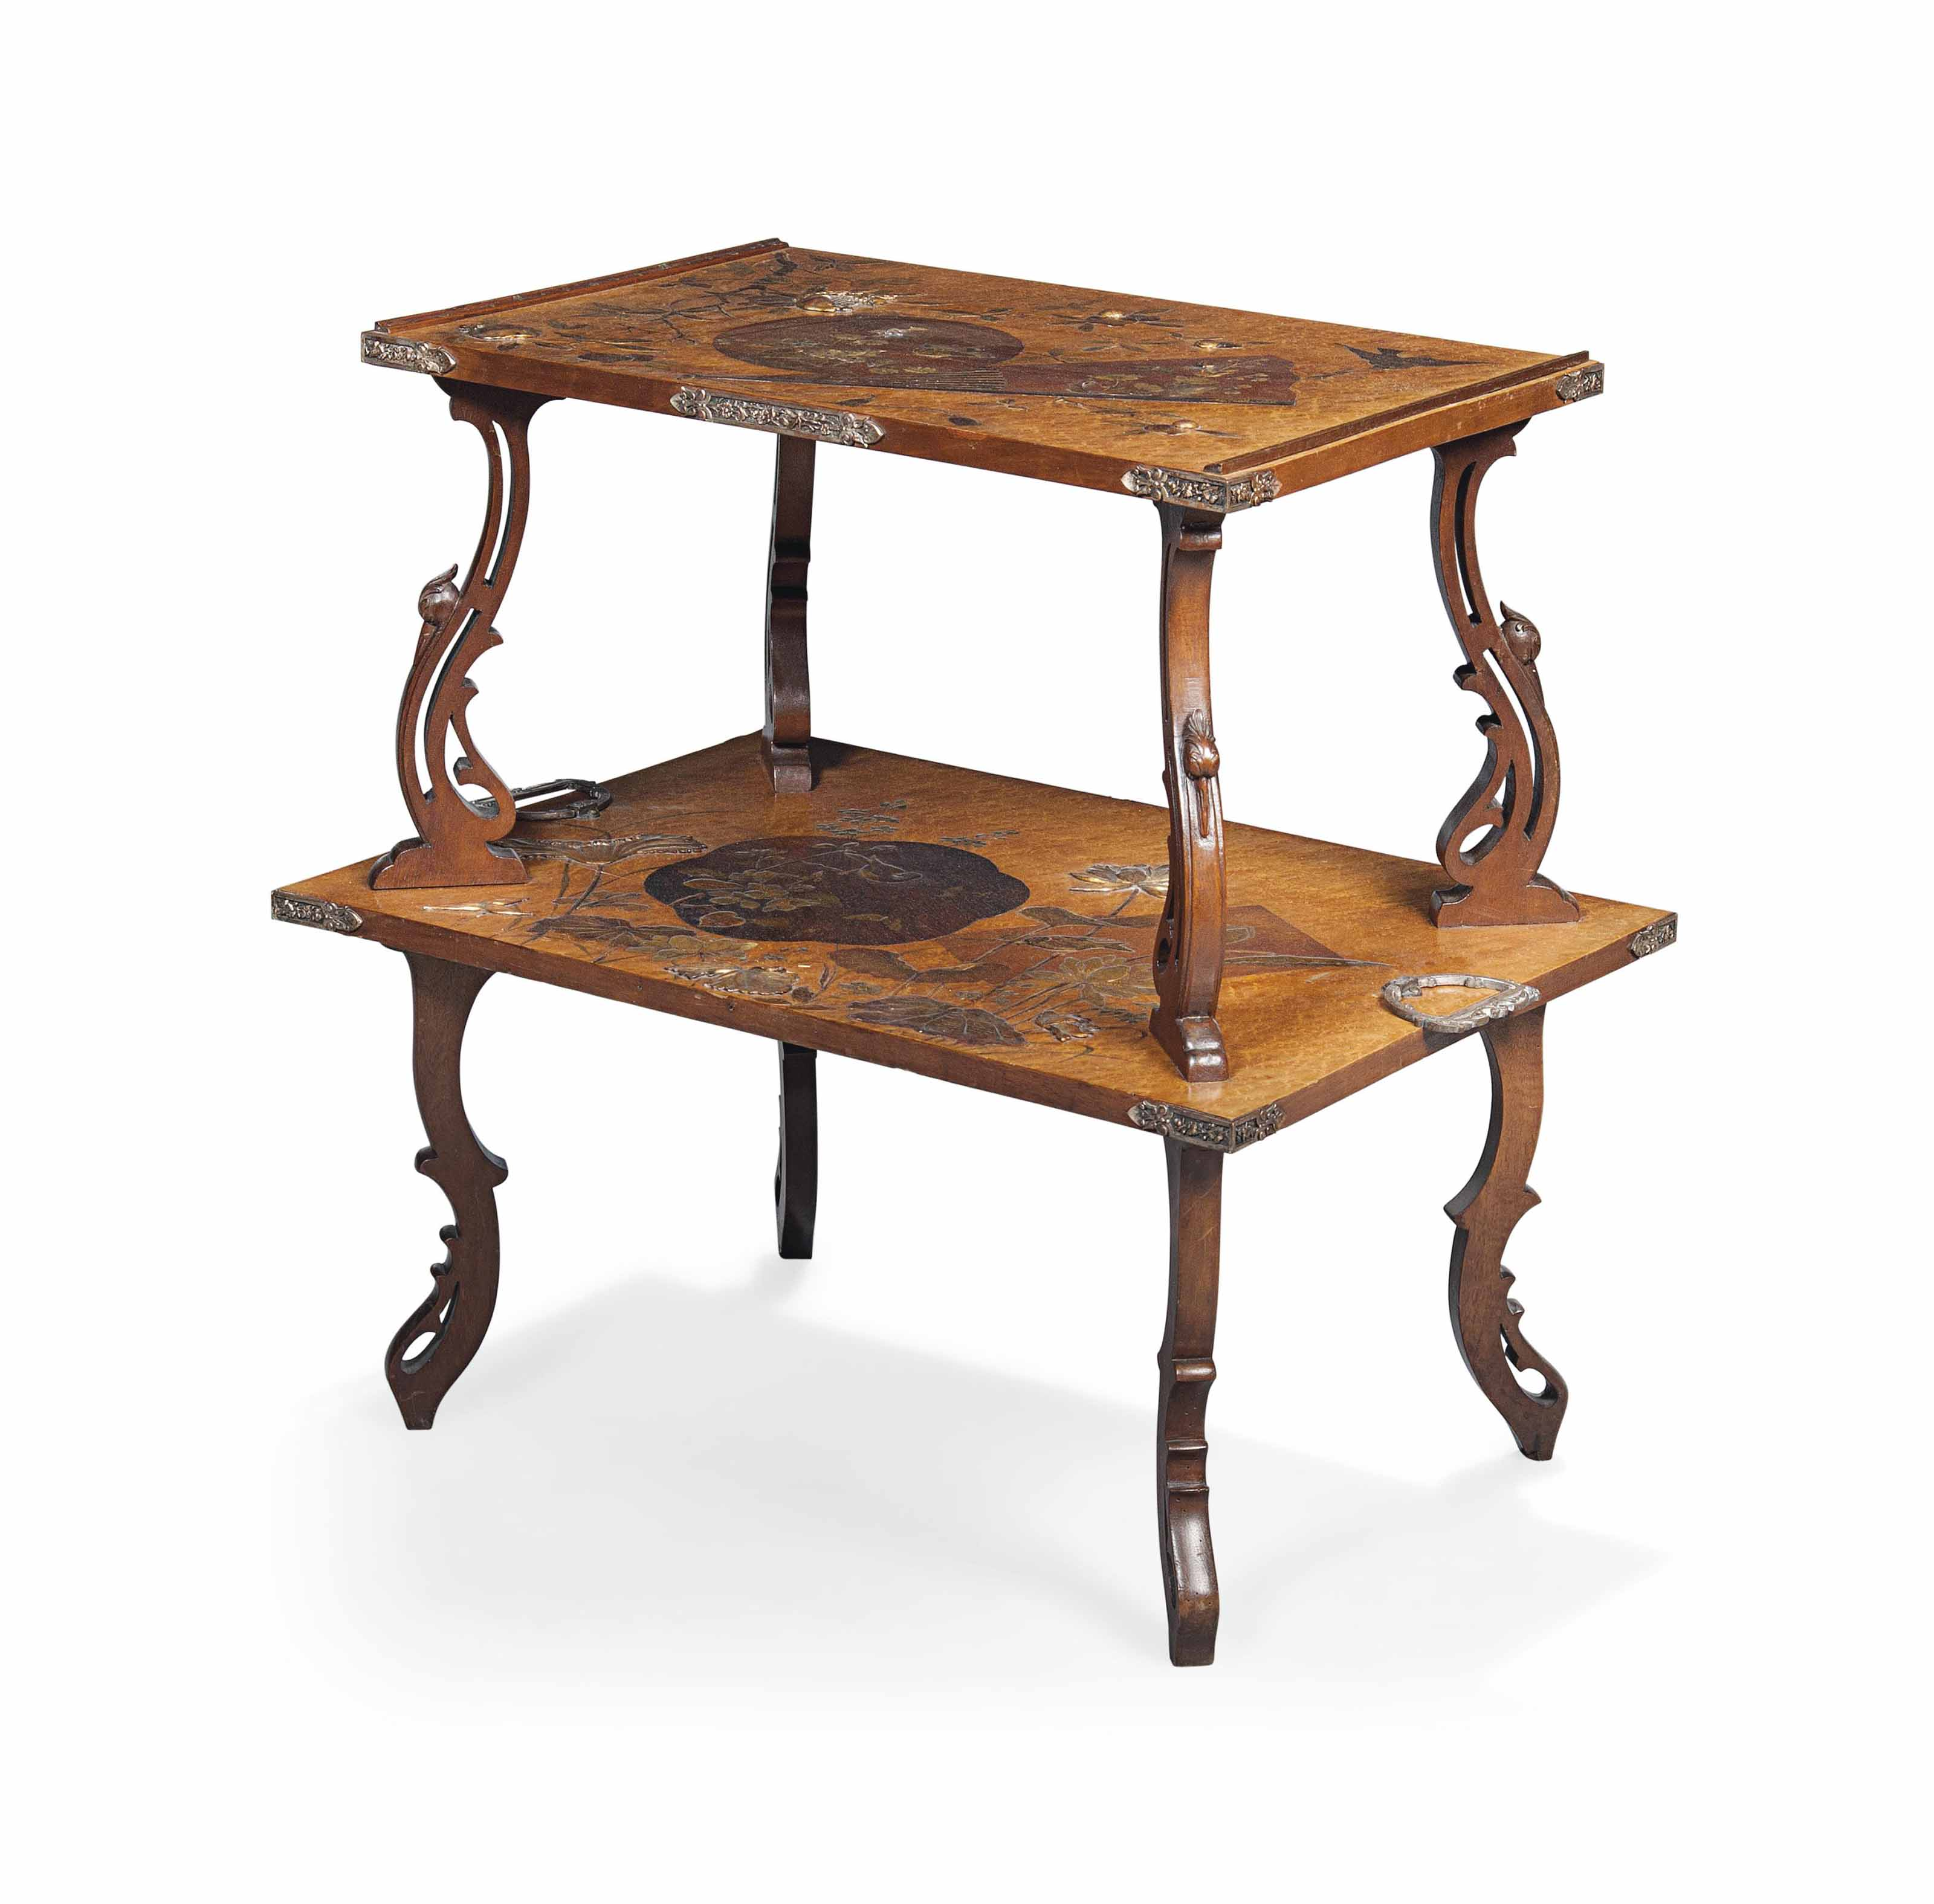 A FRENCH 'JAPONISME' ORMOLU-MOUNTED WALNUT, ROSEWOOD AND BIRDSEYE MAPLE ETAGERE